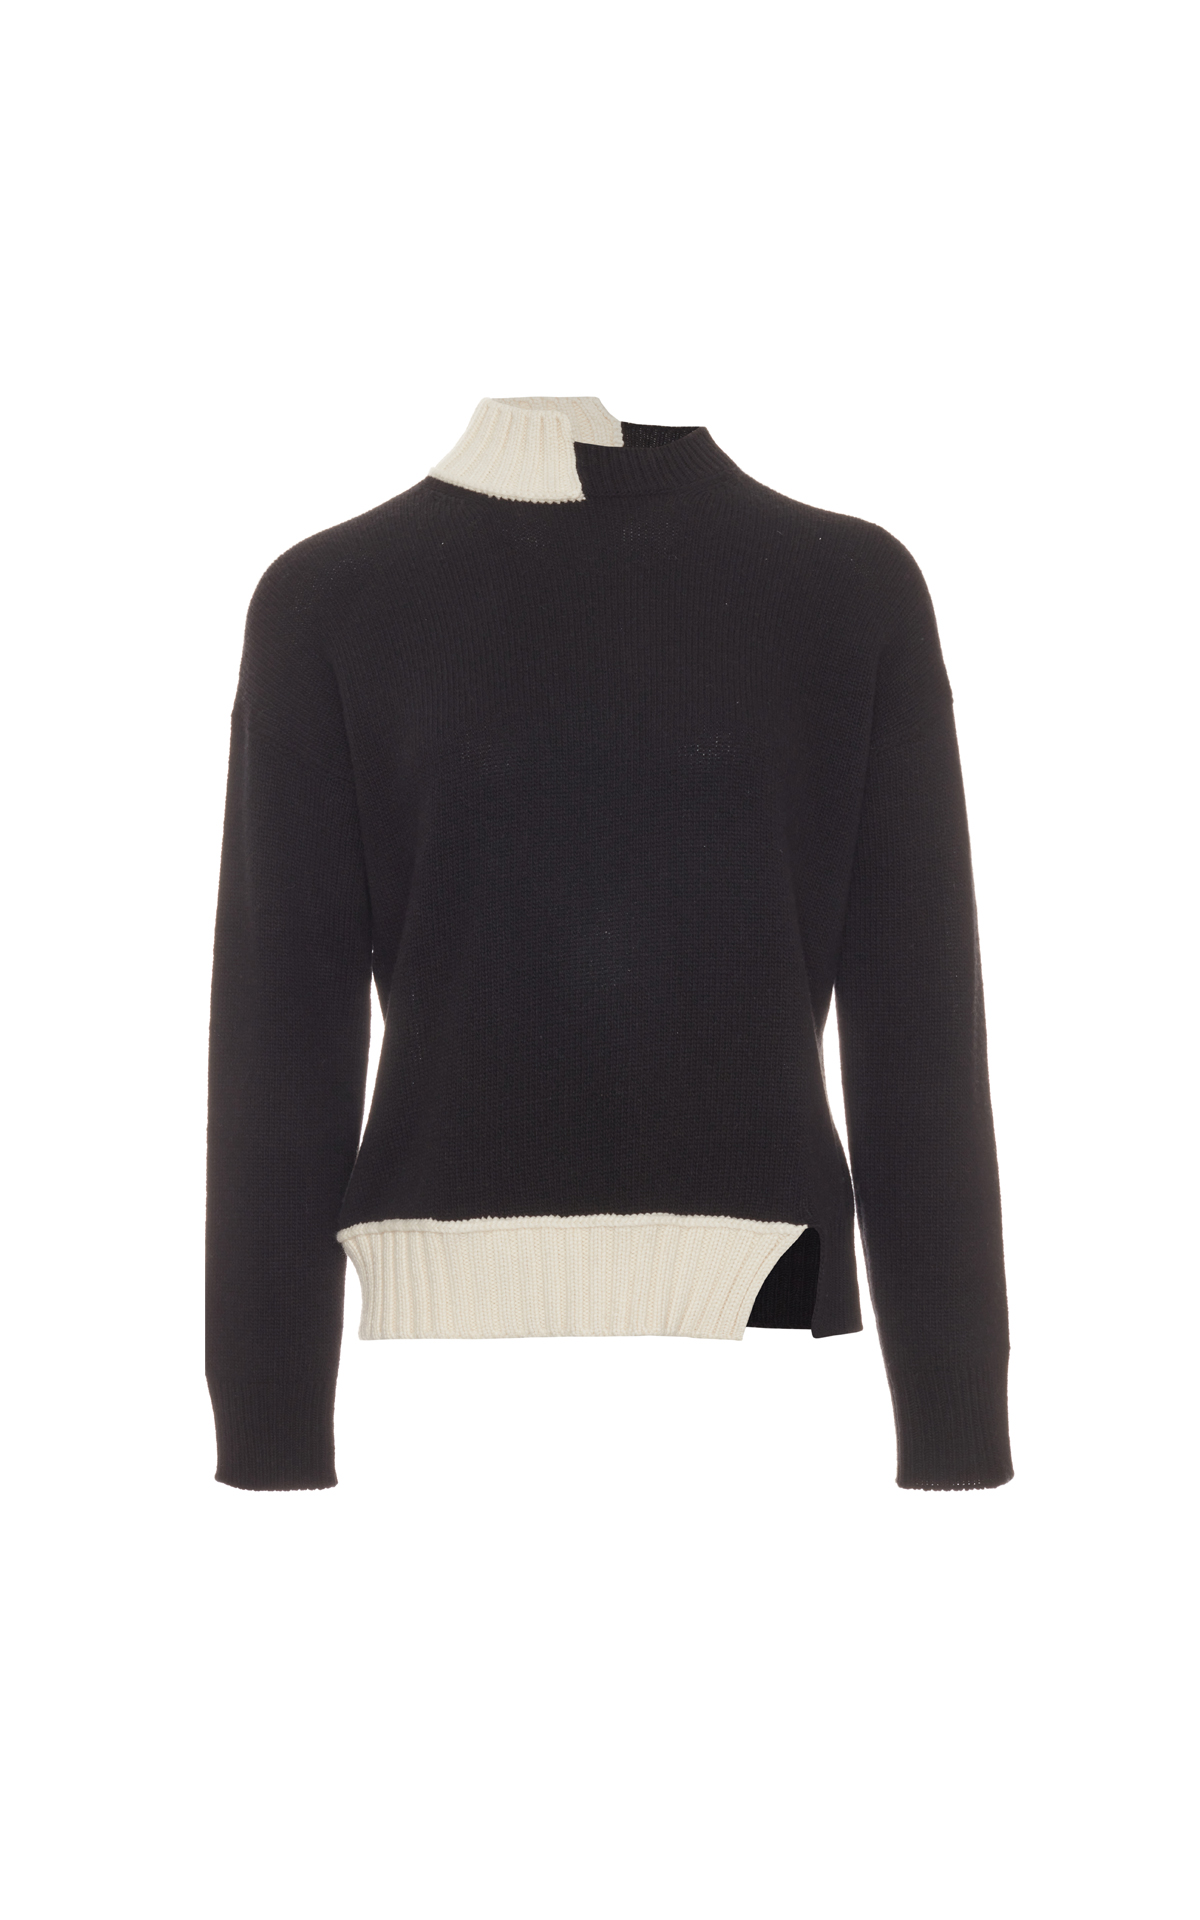 Marni Long sleeve turtleneck sweater mix black and cream from Bicester Village